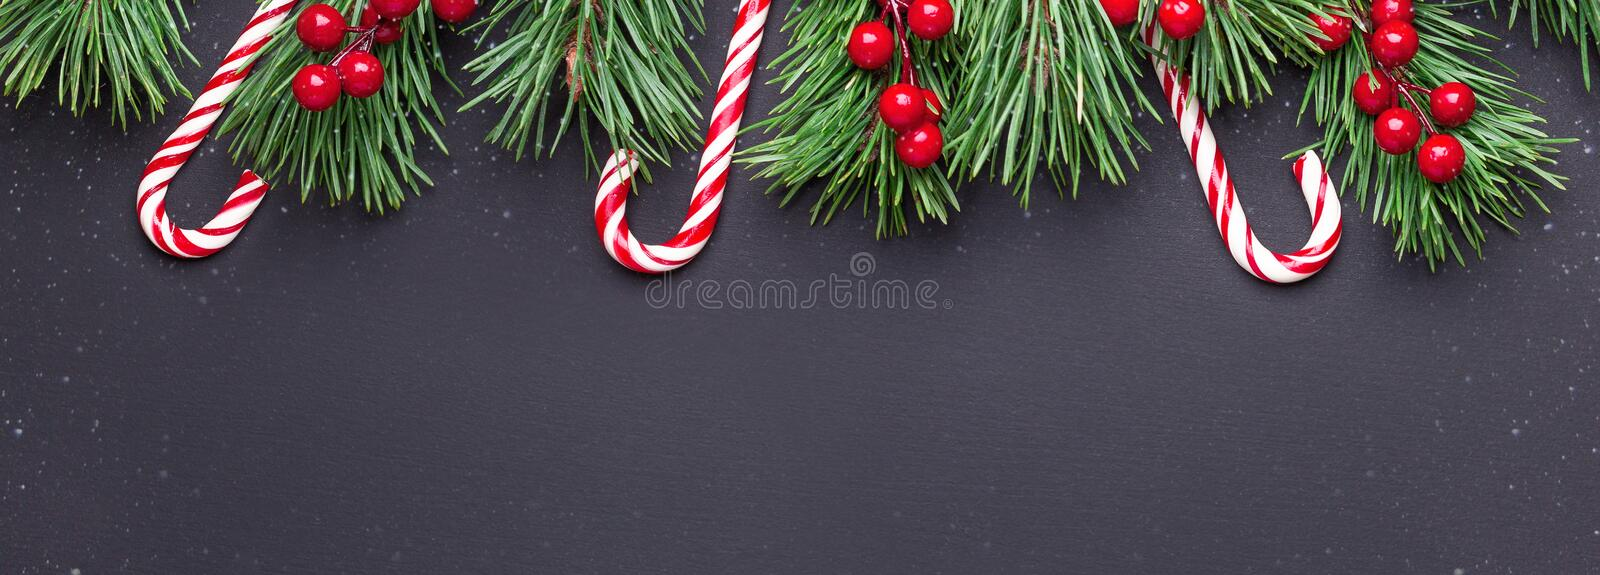 Christmas background with tree branches, candy cane and holly on black wooden background. Snowfall drawing effect. Horizontal banner. Top view Copy space stock photo